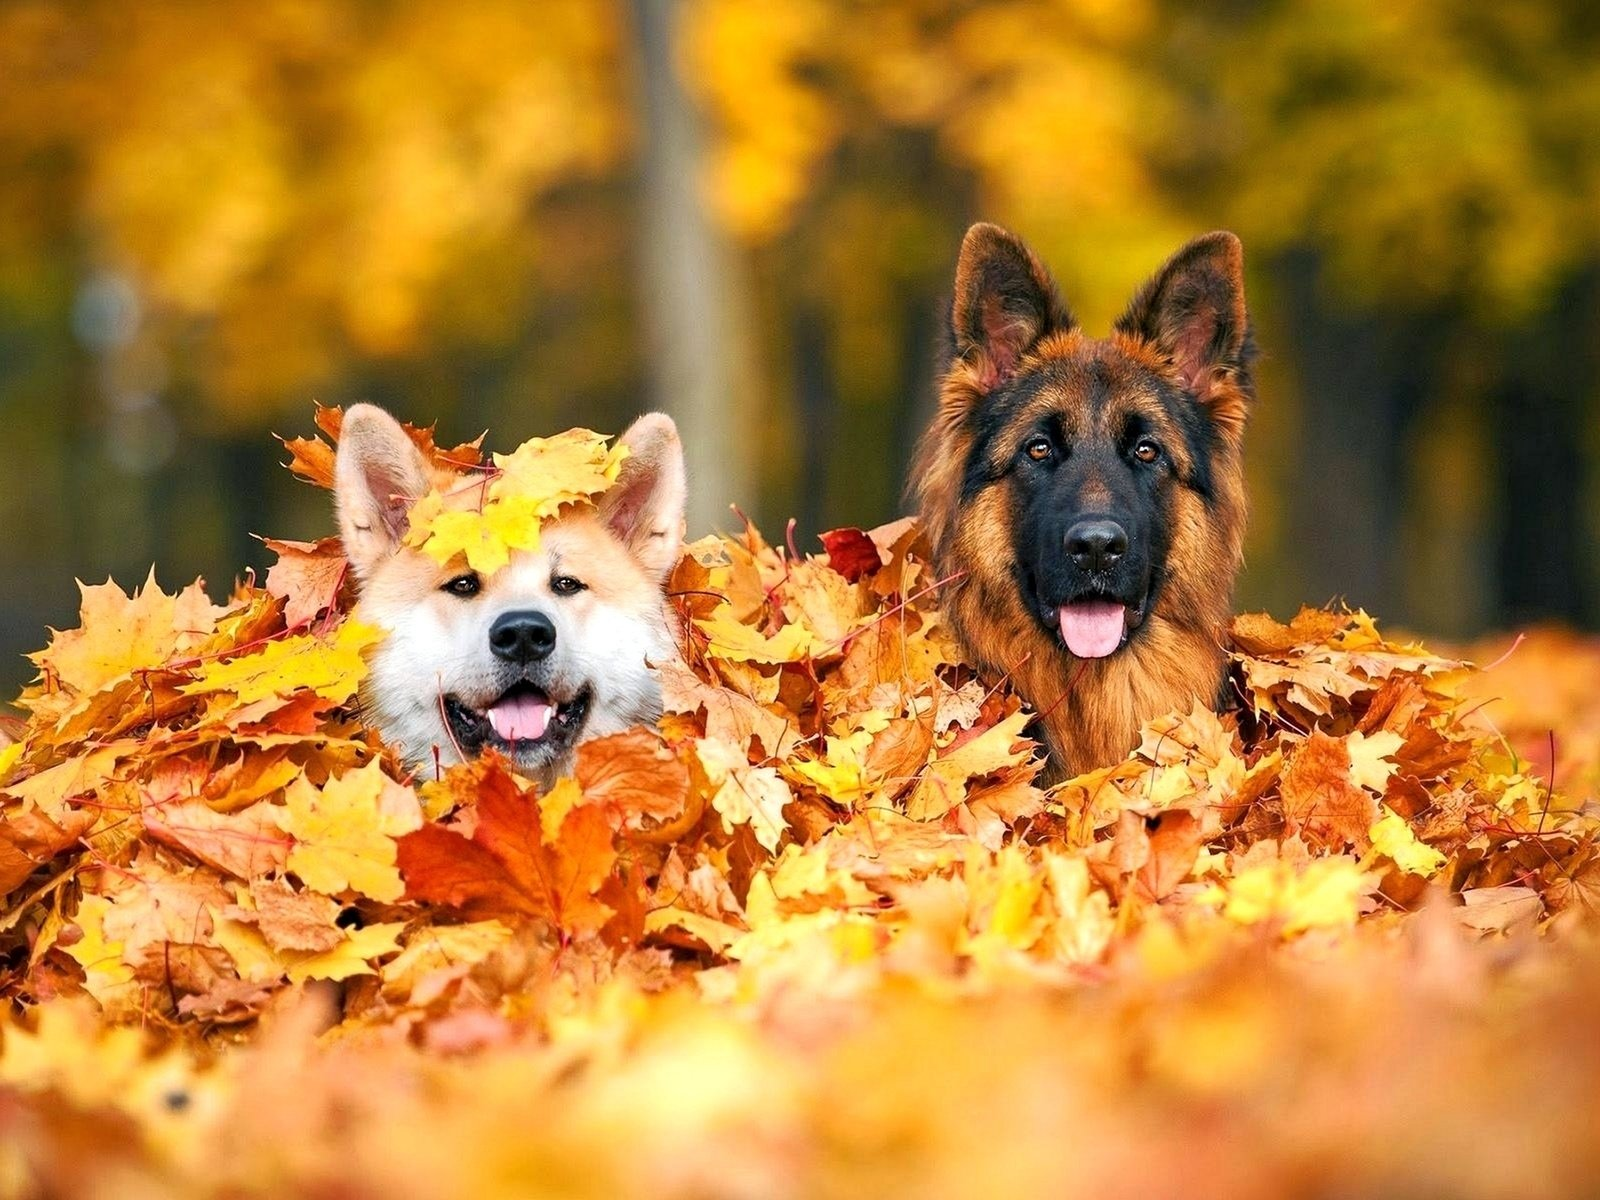 Dogs in Pile of Autumn Leaves Wallpaper and Background Image ...